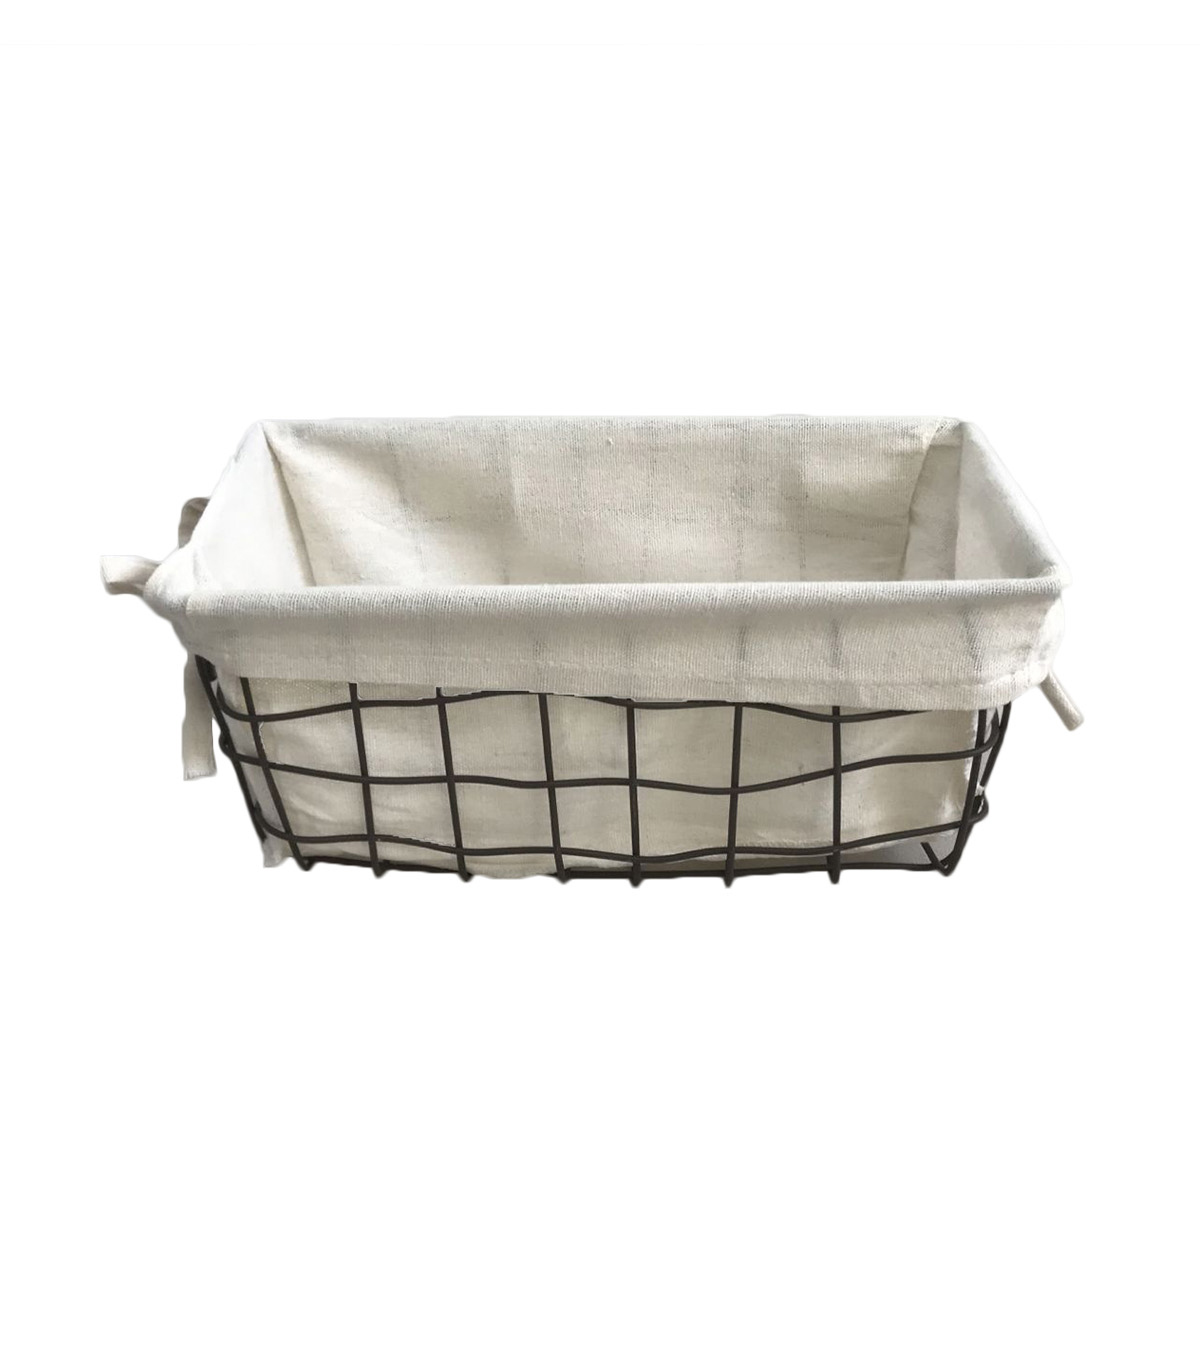 Organizing Essentials 11\u0027\u0027x6\u0027\u0027 Wire Basket with Ivory Liner